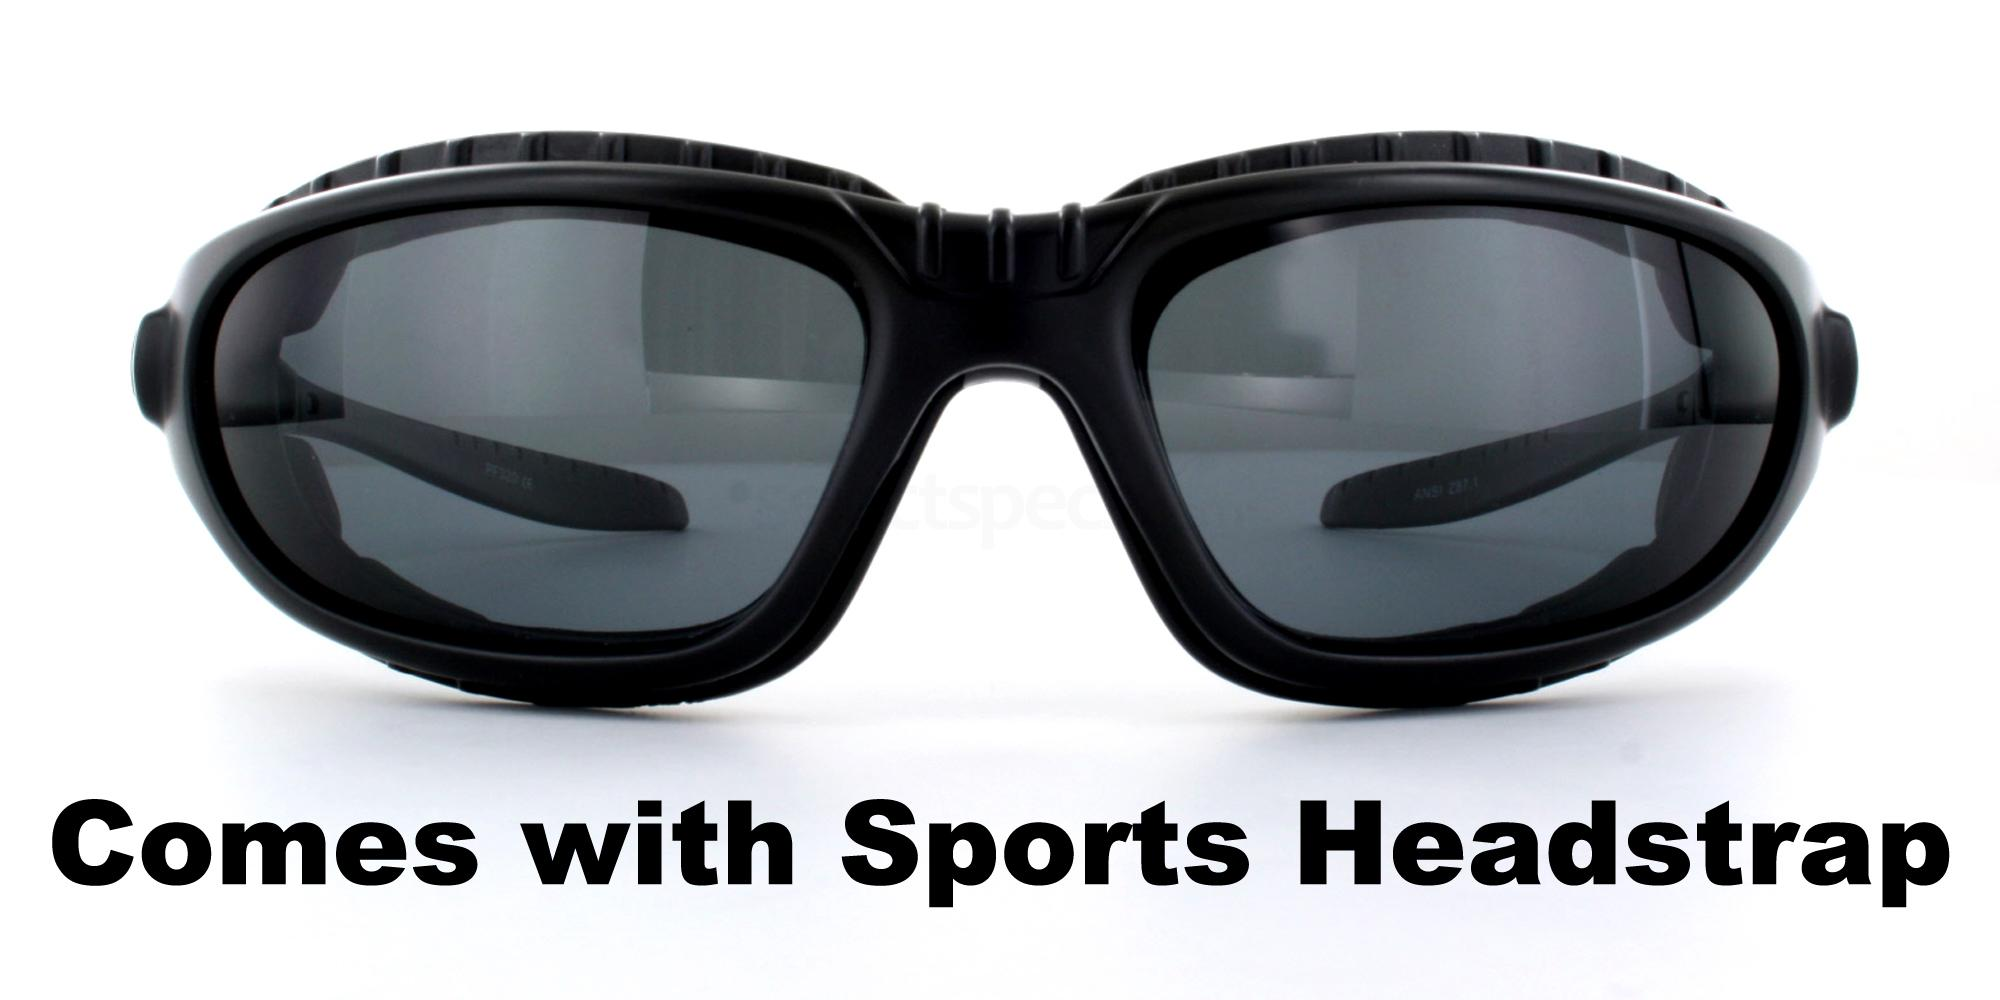 Matte Black + Grey Lens + Headstrap PF320 Sunglasses, Aero